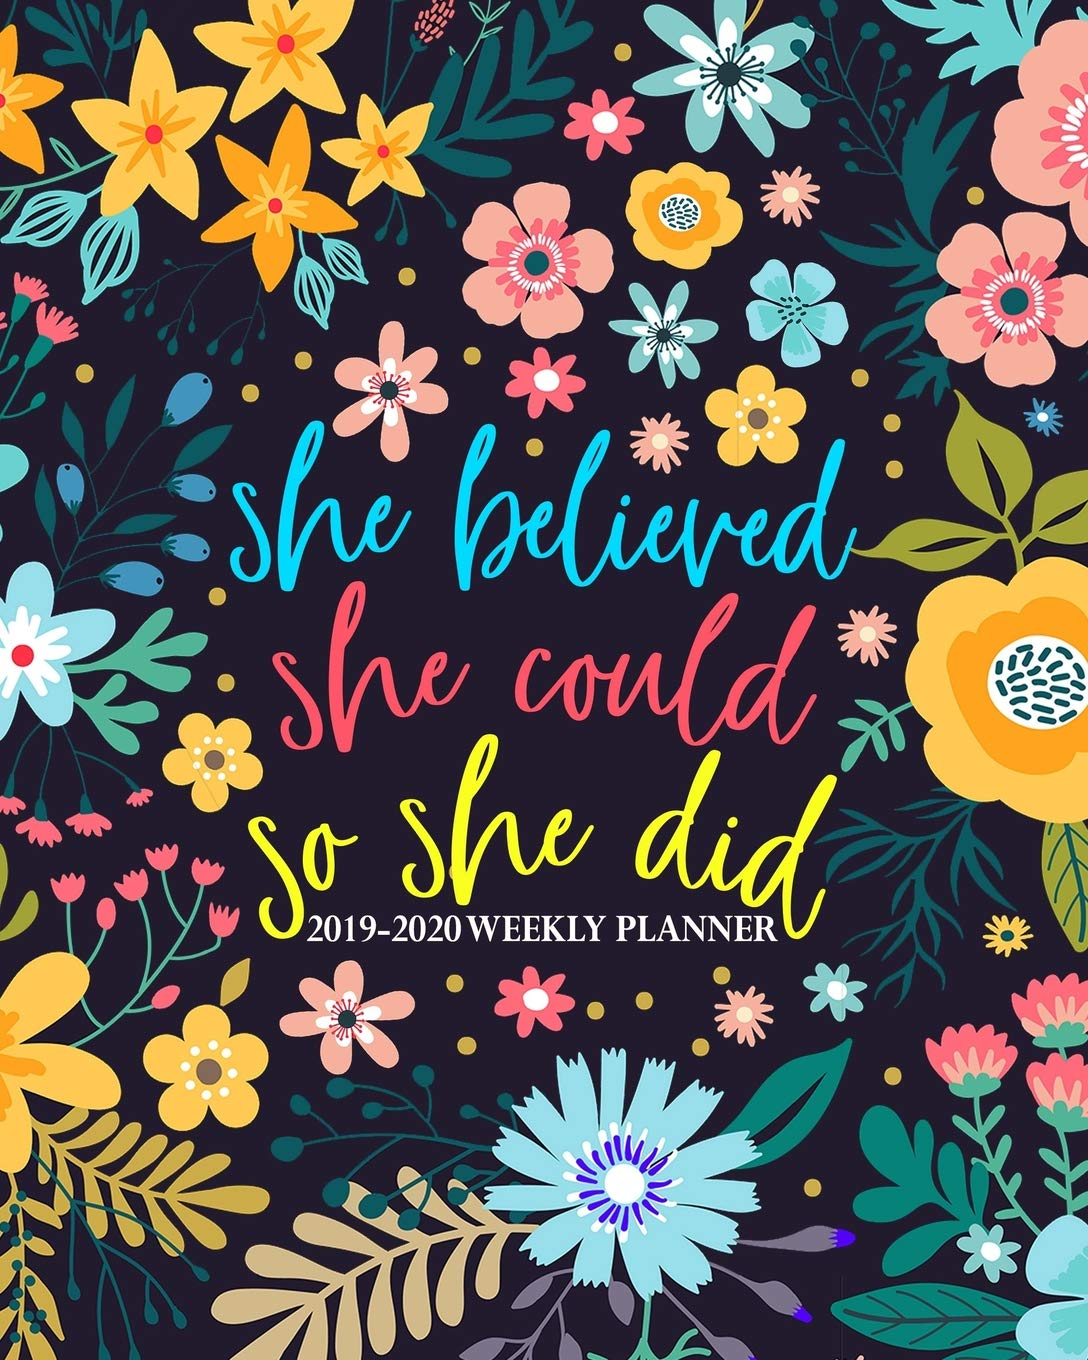 Amazon.com: She Believed She Could So She Did: 2019-2020 ...